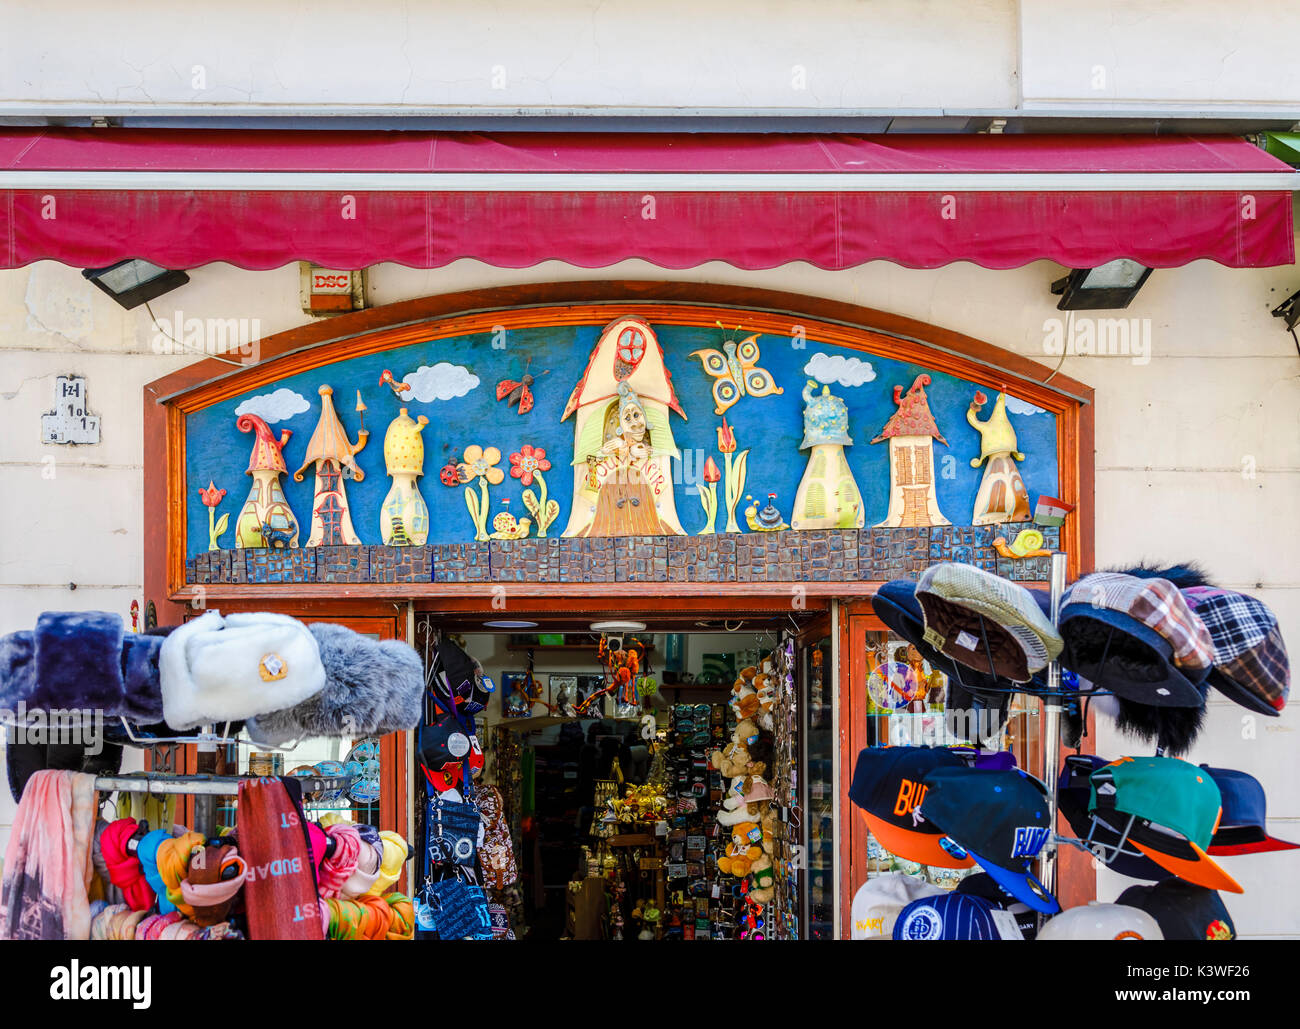 hungary budapest shopping centre stockfotos hungary budapest shopping centre bilder alamy. Black Bedroom Furniture Sets. Home Design Ideas